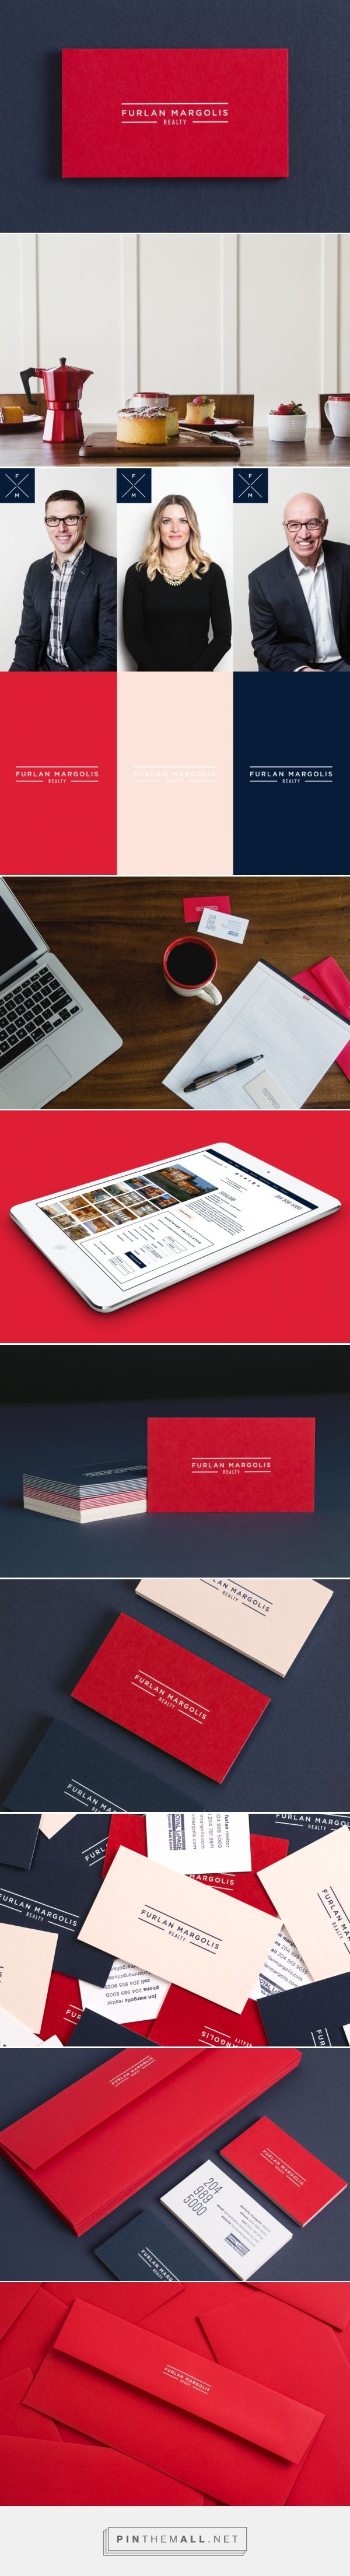 Furlan Margolis Realty Branding by One Plus One Design | Fivestar Branding – Design and Branding Agency & Inspiration Gallery